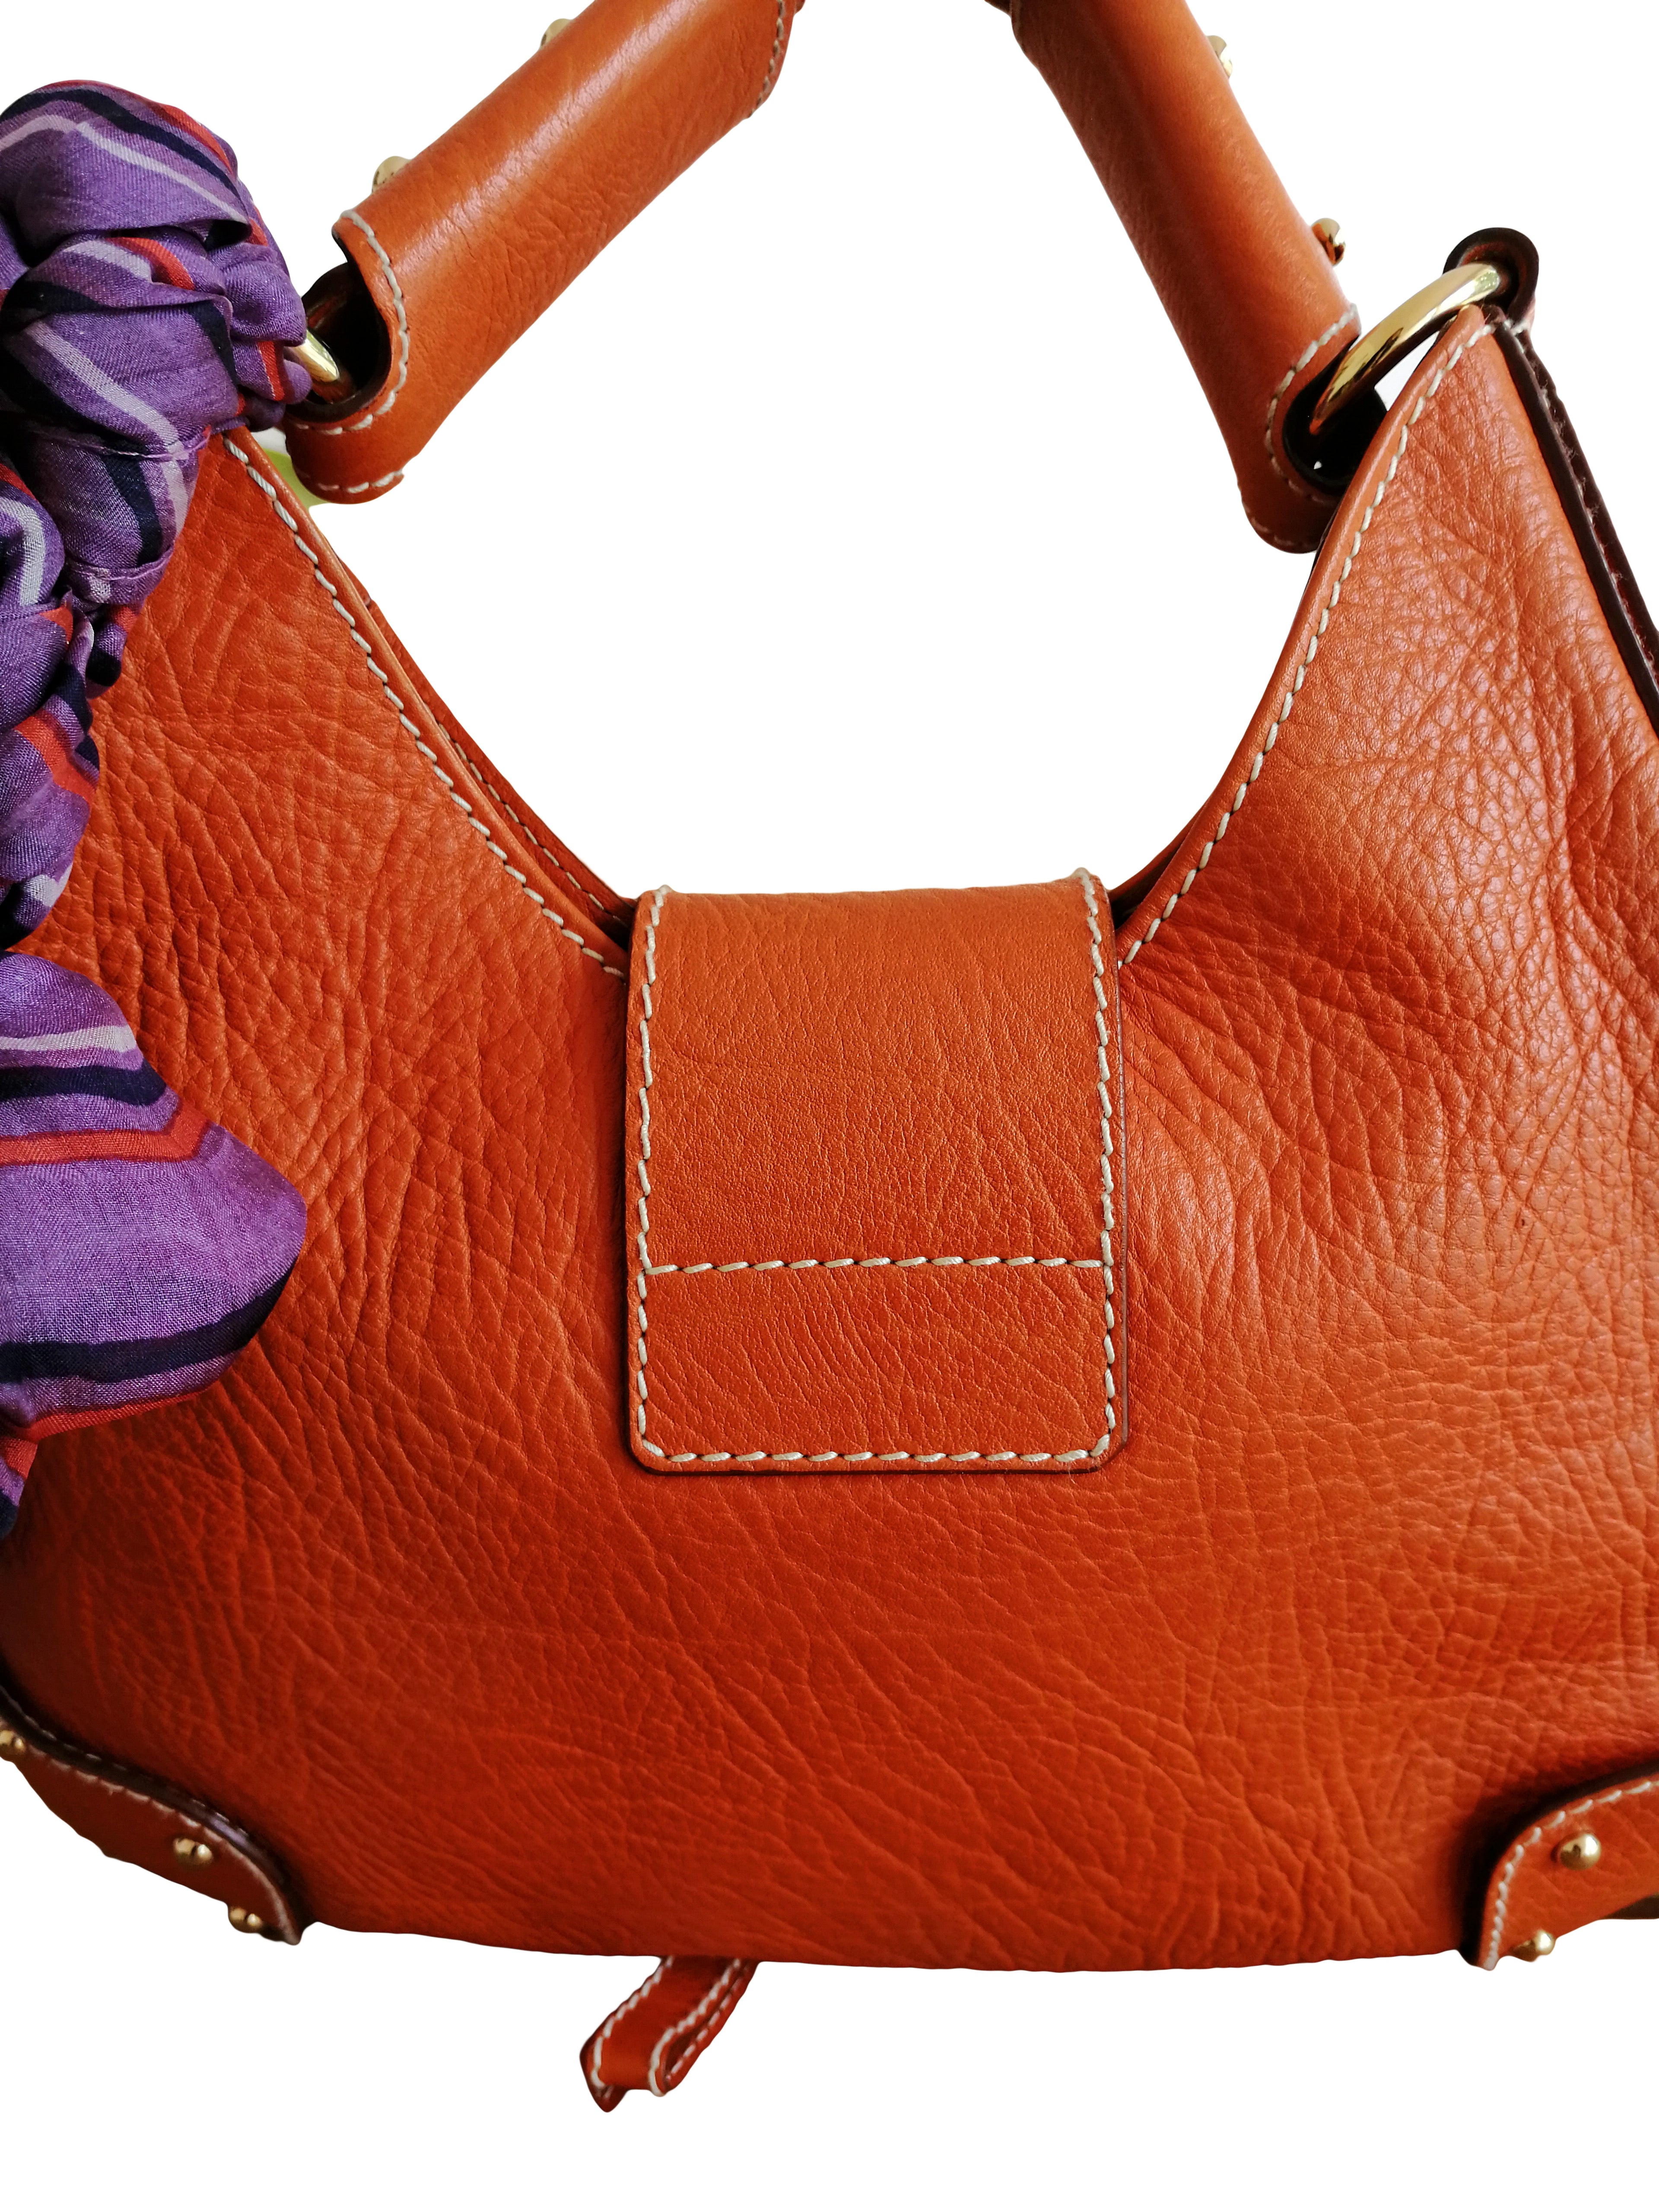 Dolce & Gabbana Orange Leather Handbag